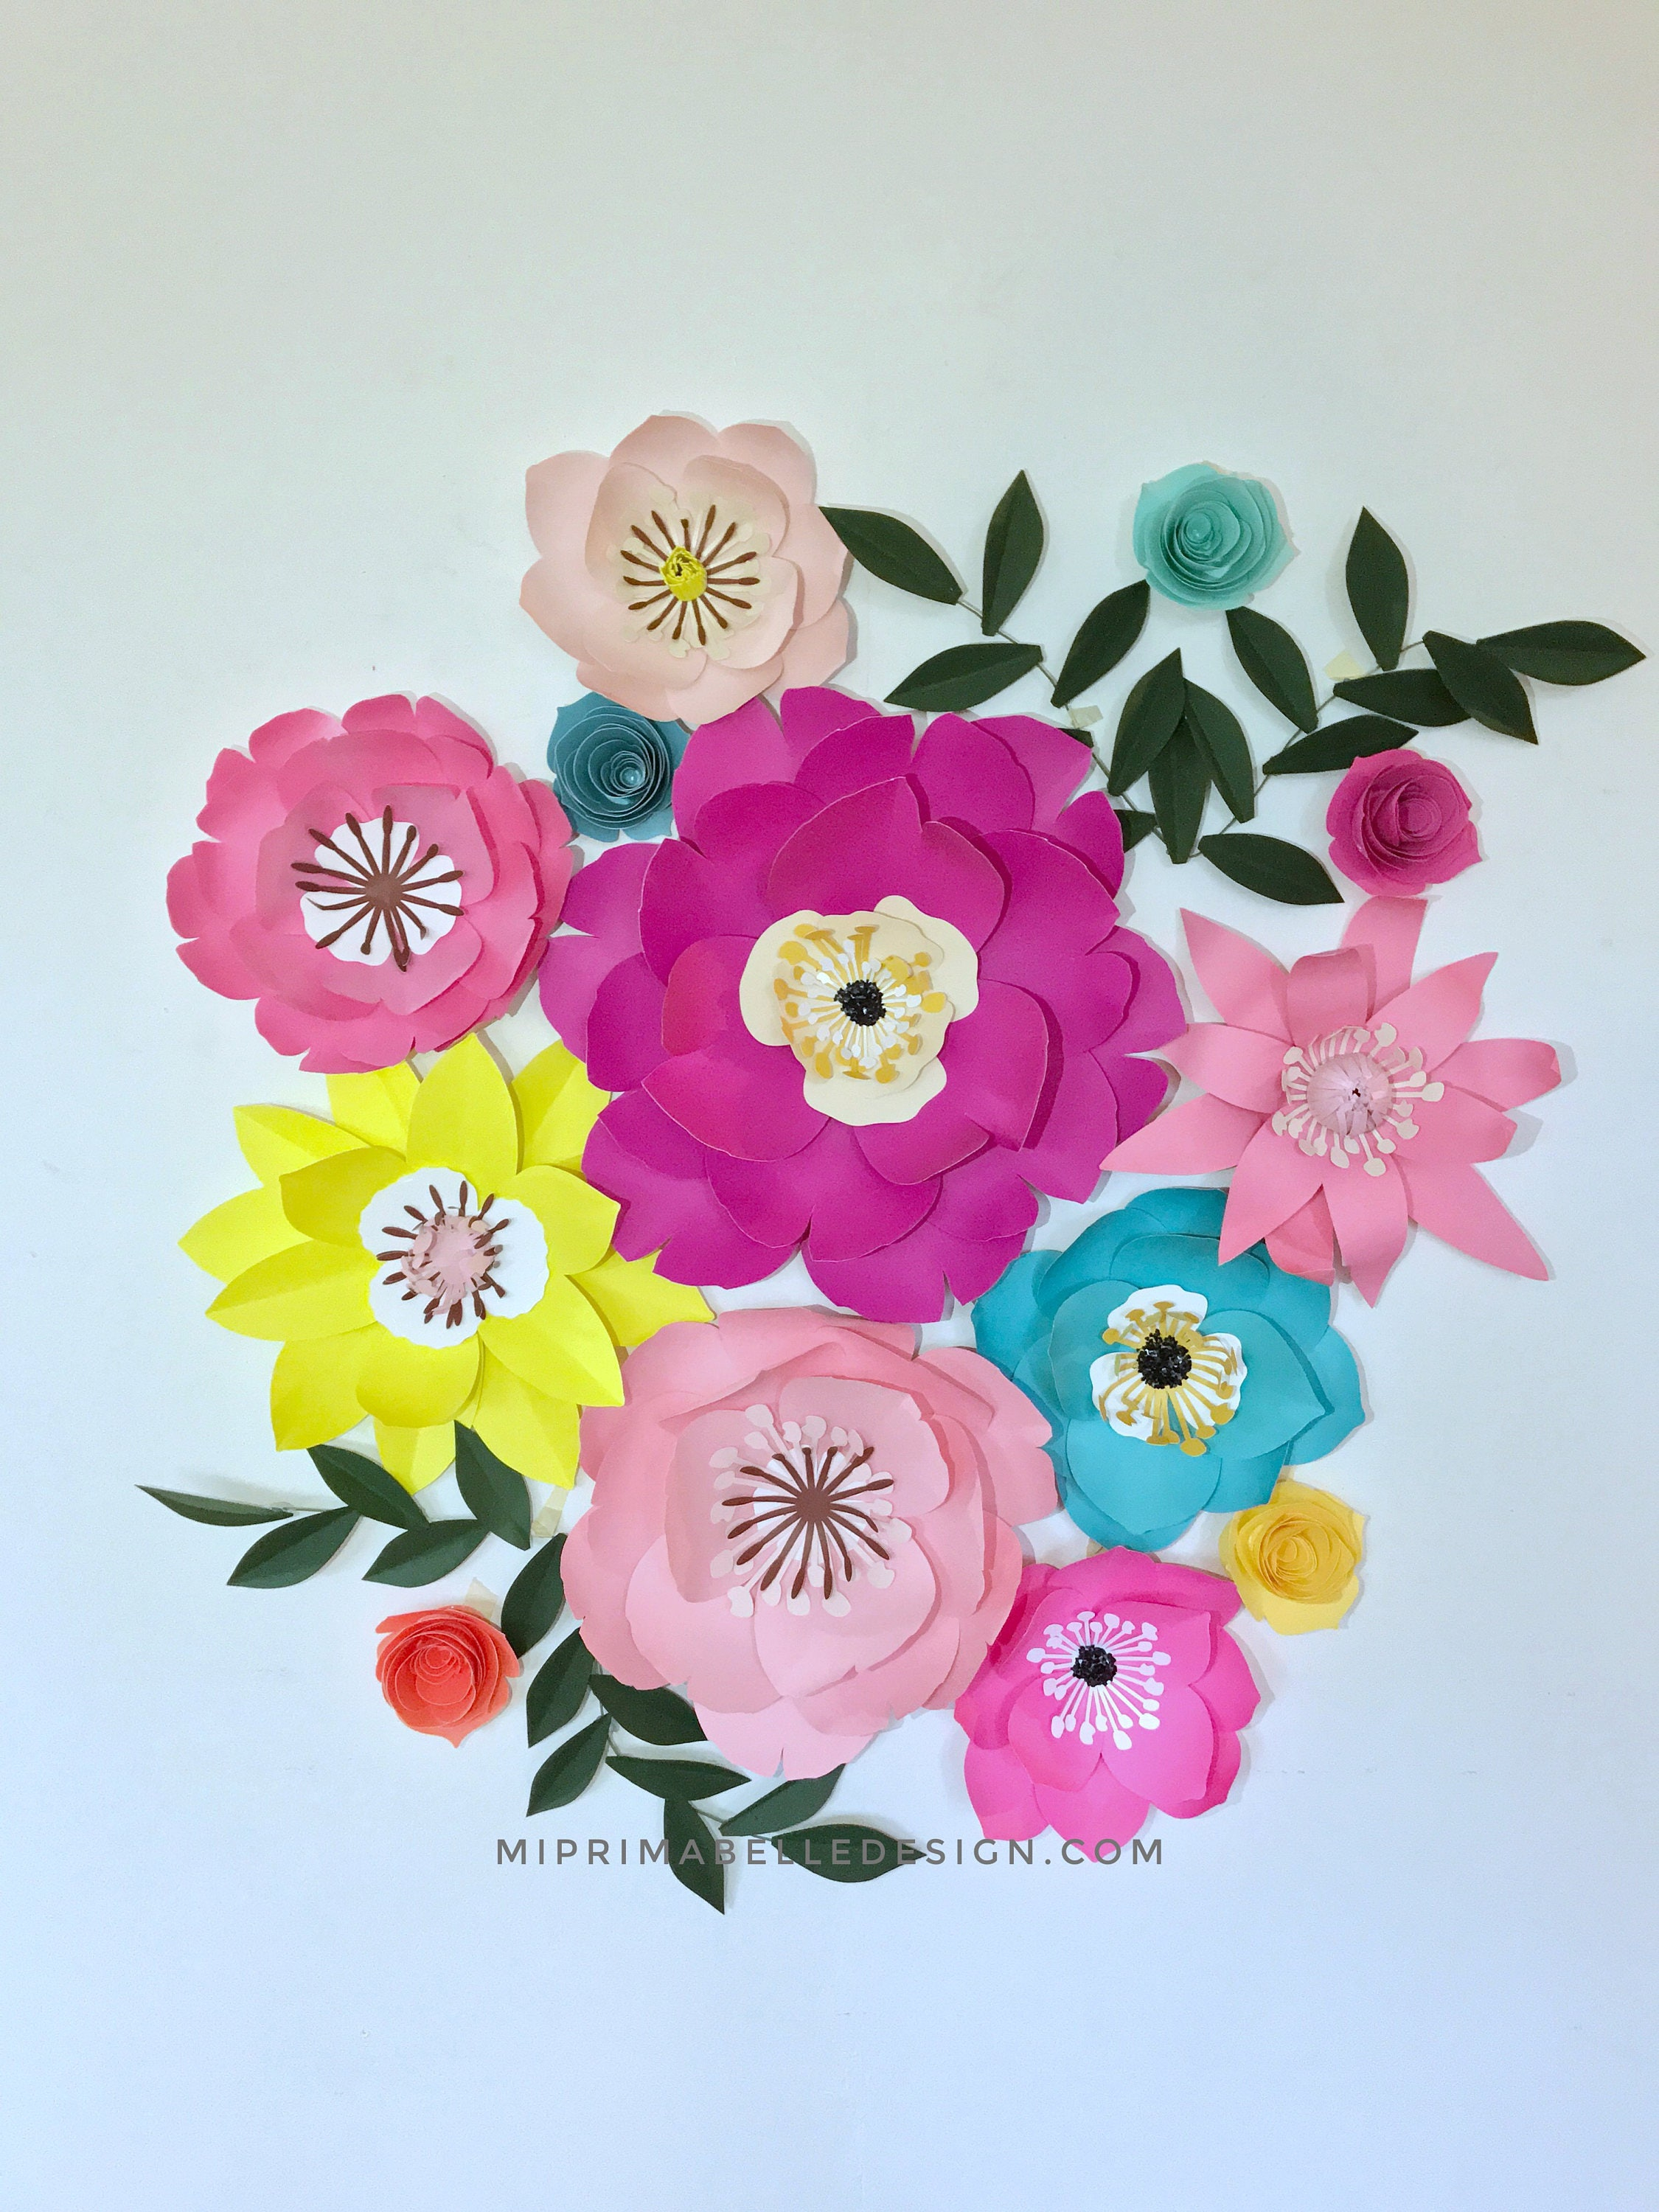 Robin egg blue paper flowers wall decor baby girl nursery bedroom robin egg blue paper flowers wall decor baby girl nursery bedroom accent pink paper flowers backdrop first birthday party photo shoot props amipublicfo Choice Image